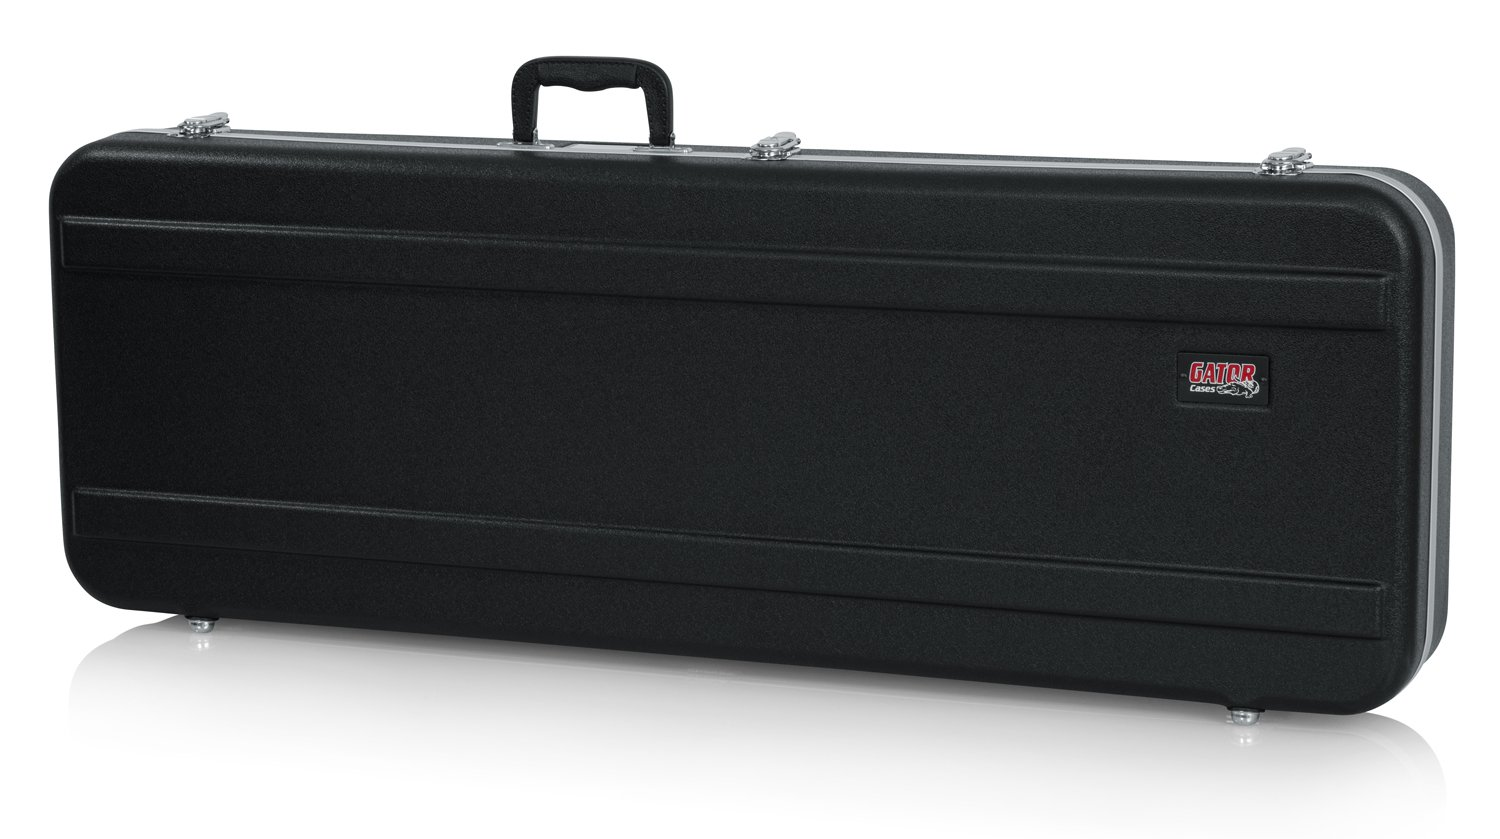 Gator Cases Deluxe ABS Molded Case for Extended Length/Extra Long Electric Guitars; (GC-ELEC-XL) by Gator